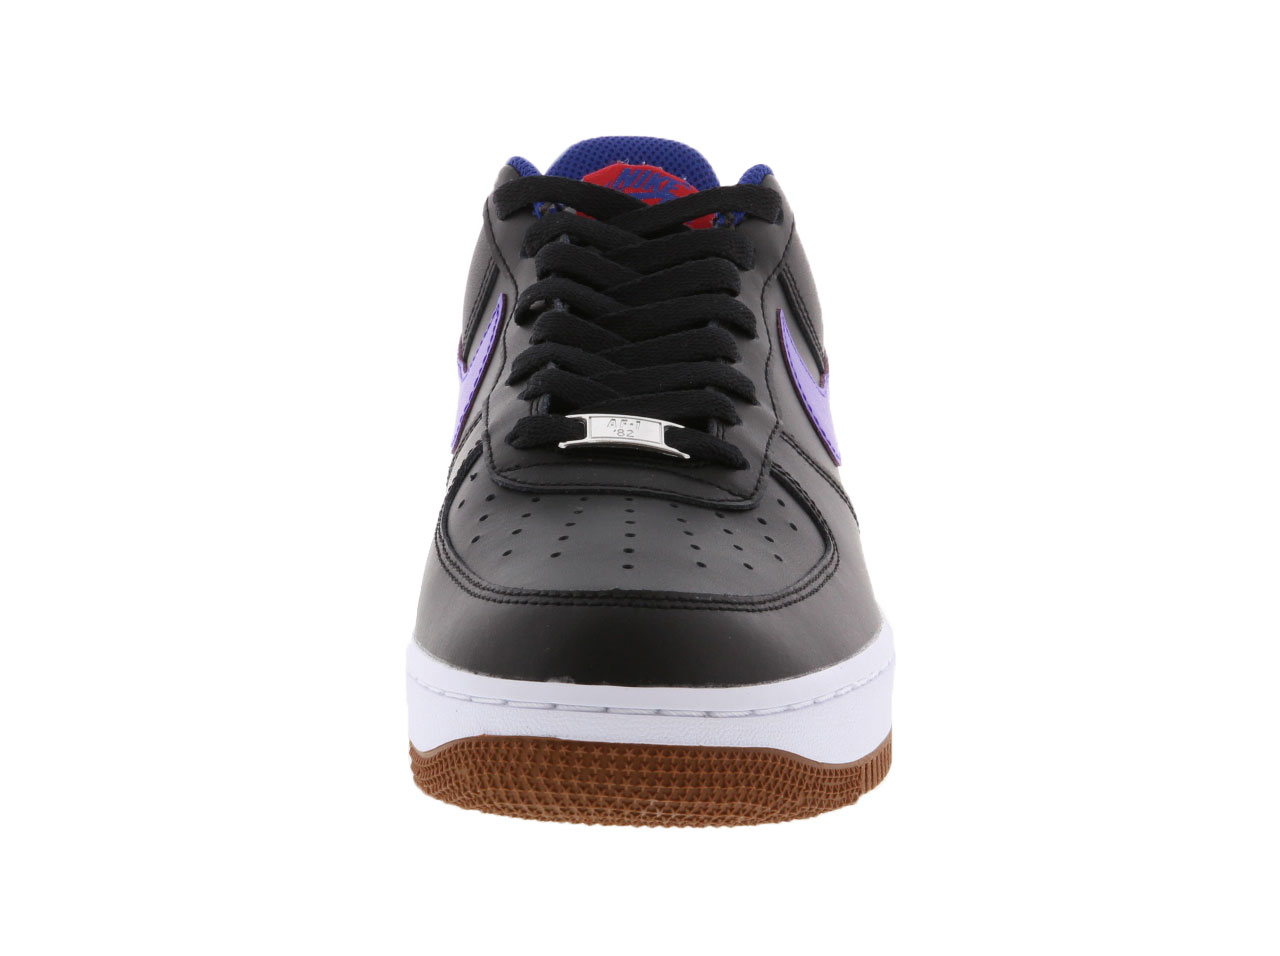 【SALE】NIKE AIR FORCE 1 '07 LE SBY / COLLECTION - BLACK